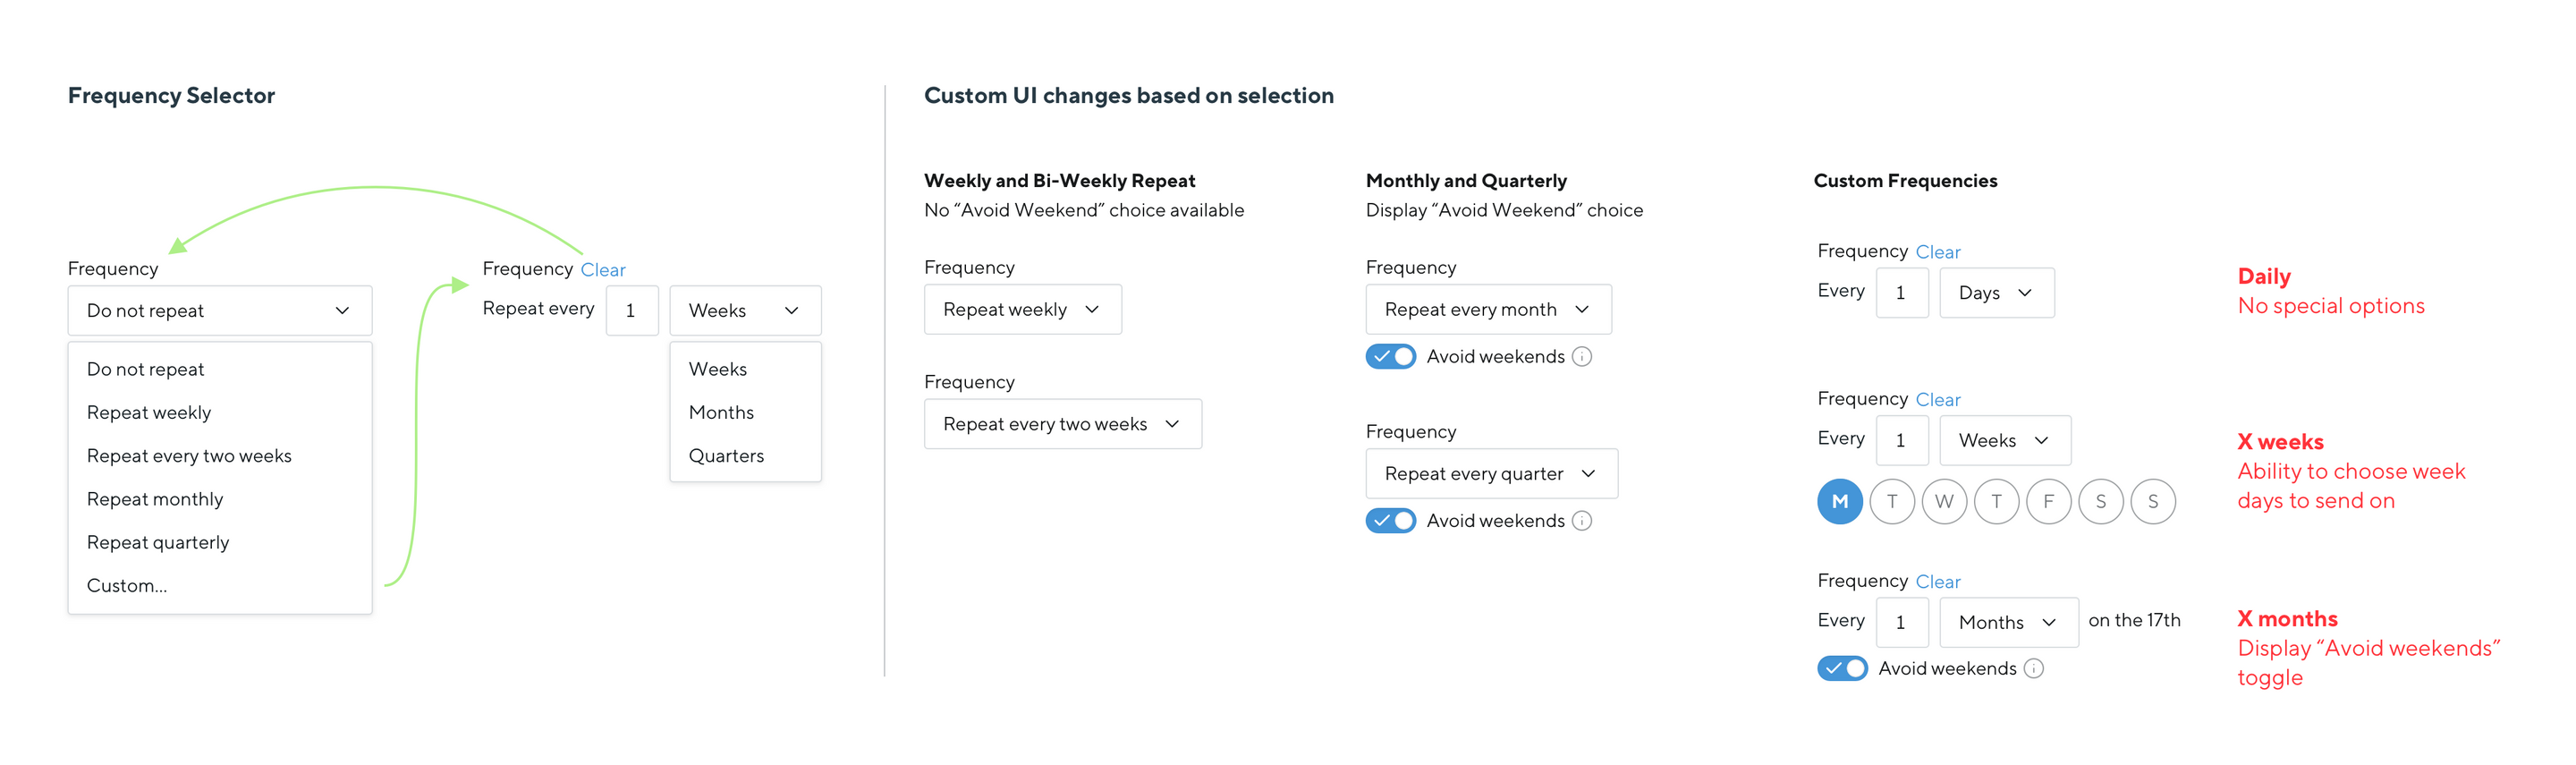 Mock-up of survey frequency controls showing diffferent frequency options